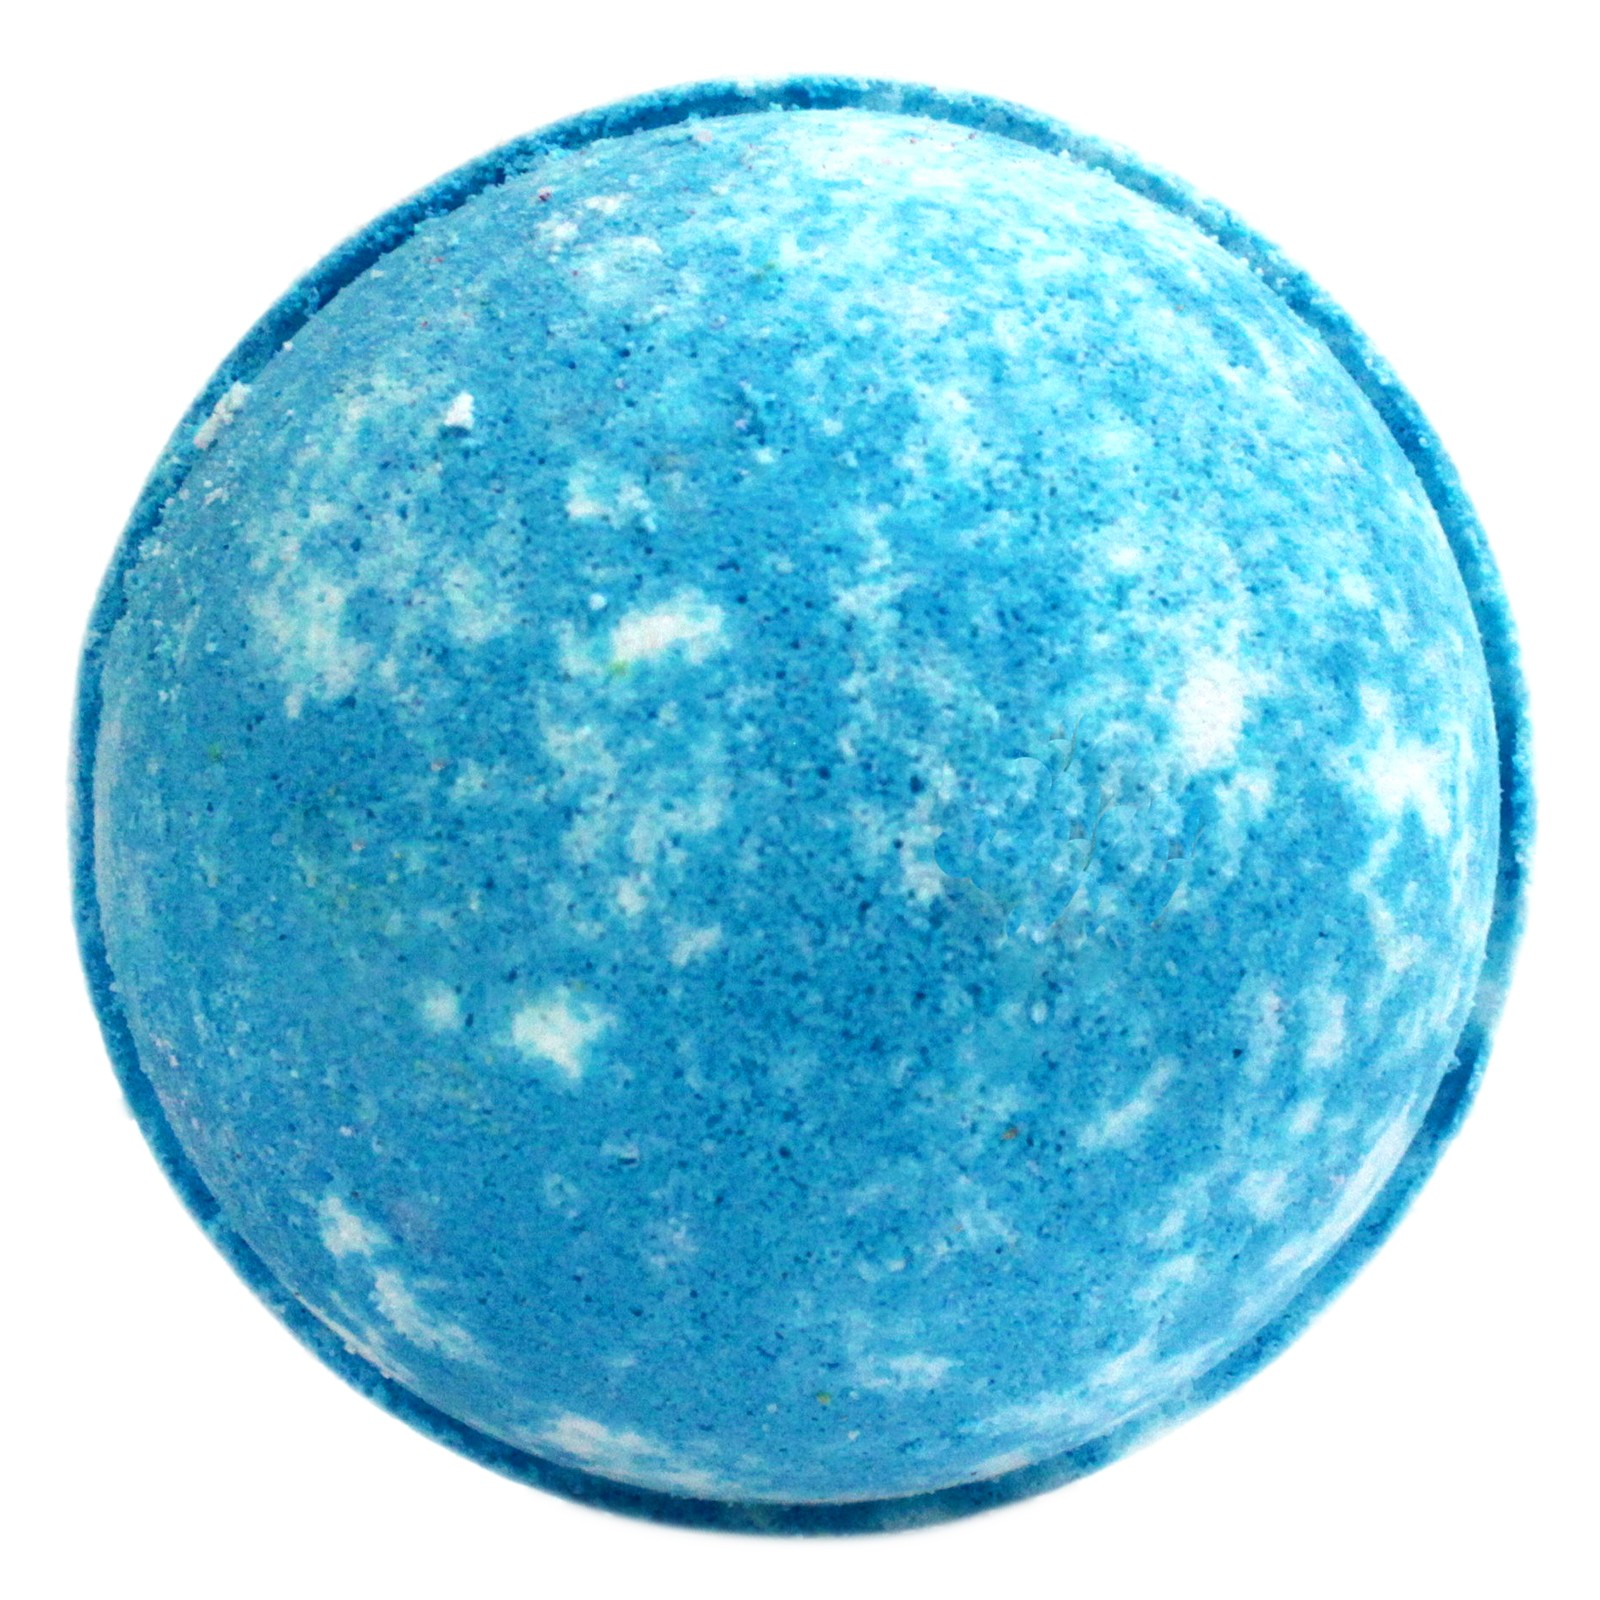 Angel Delight Bath Bomb Blue and White